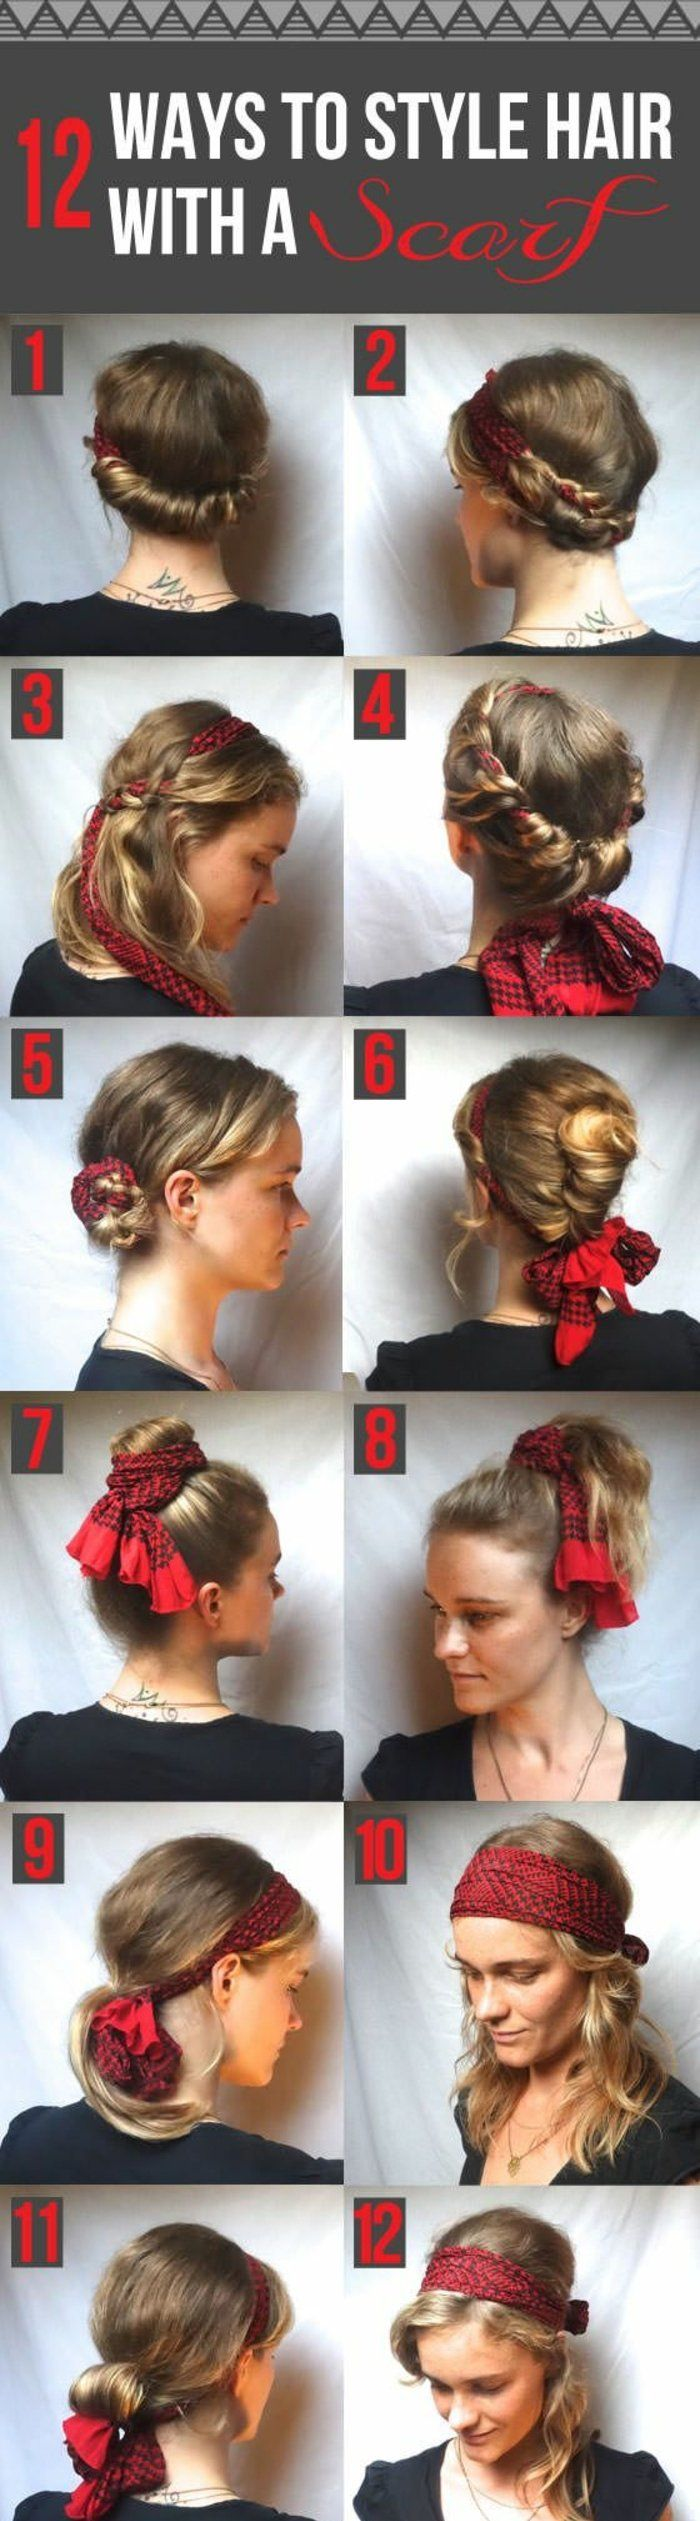 1000 Ideas About Coiffure Avec Foulard On Pinterest Foulard